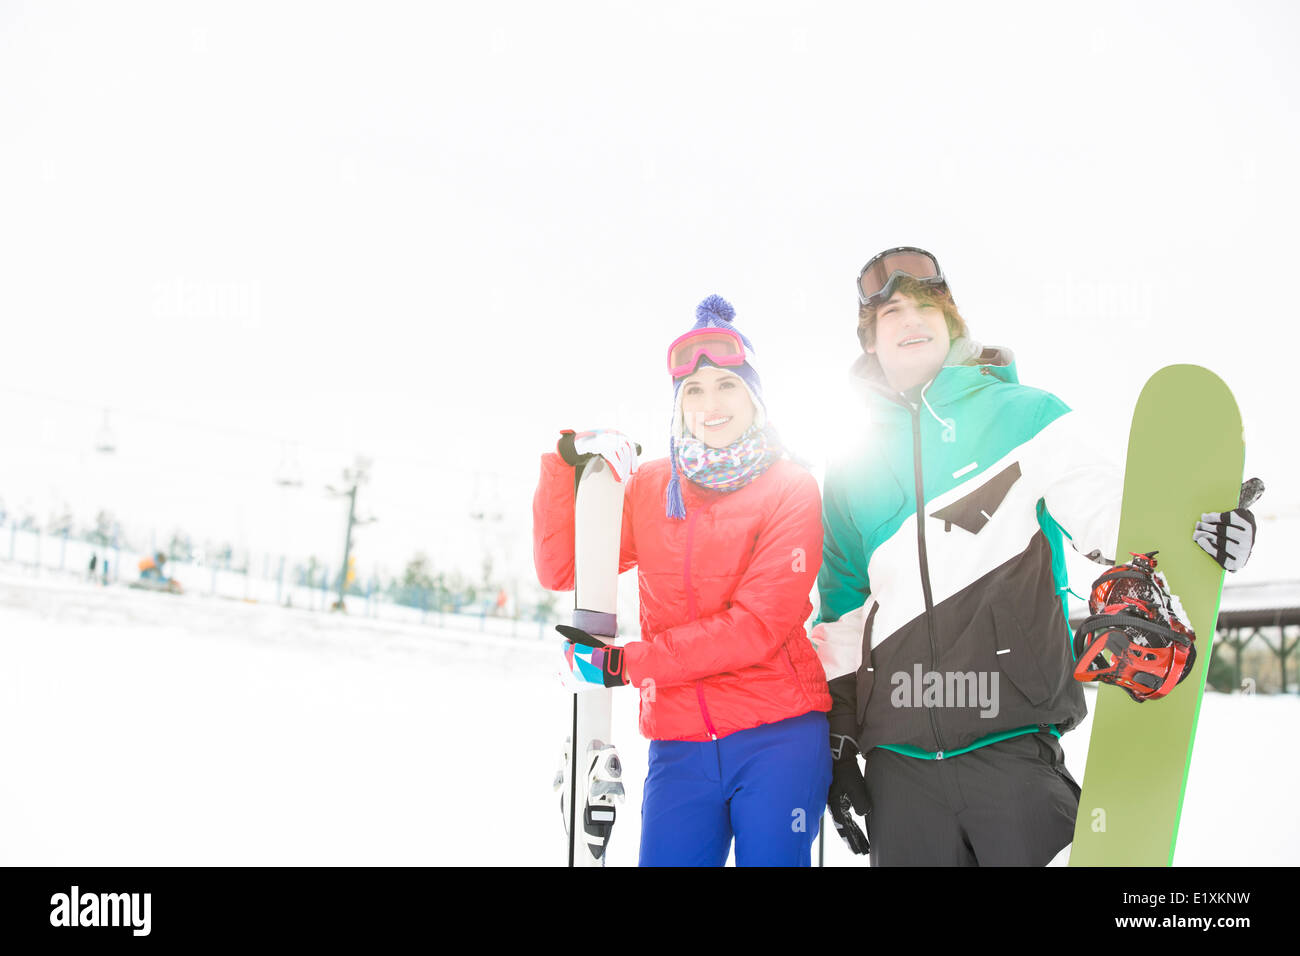 Young couple with snowboard and skis in snow - Stock Image